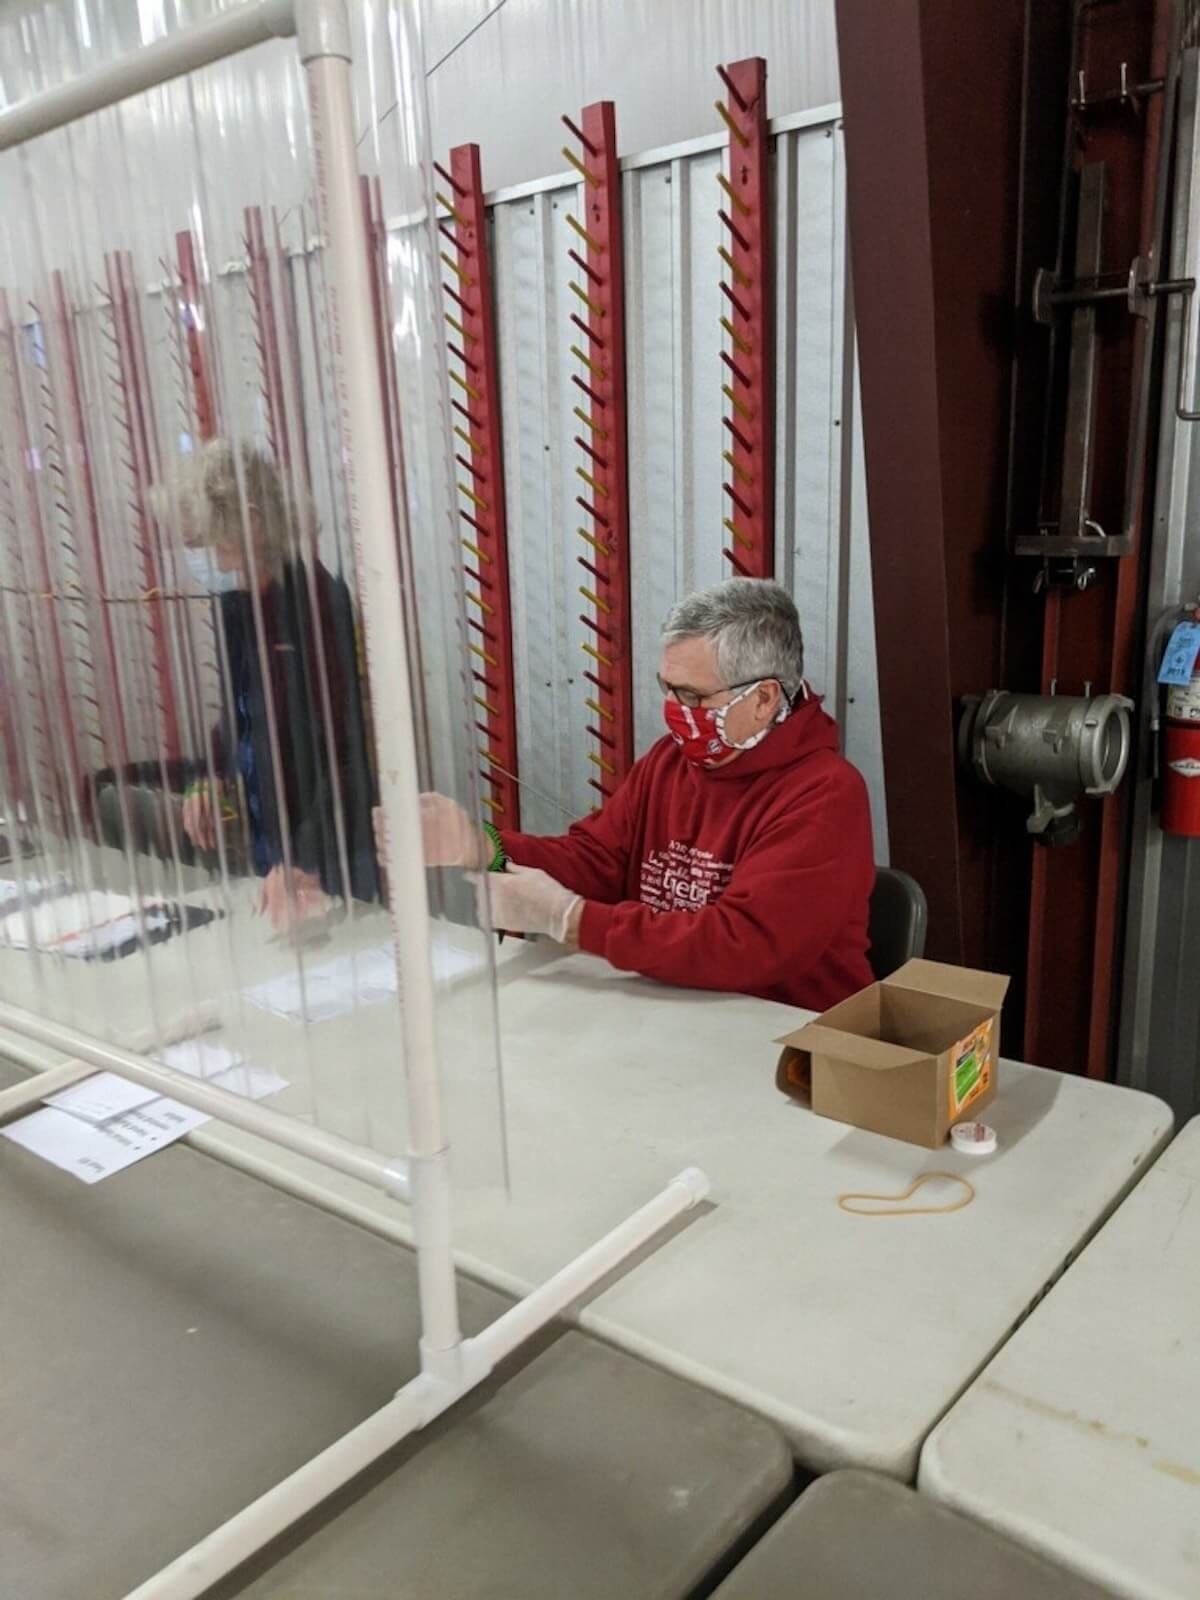 Sen. Jeff Smith, D-Eau Claire, works at the Brunswick Town Hall during Tuesday's election. Smith and others said they worry holding an in-person election in Wisconsin will lead to an unnecessary spike in COVID-19 cases in upcoming weeks. (Photo provided)